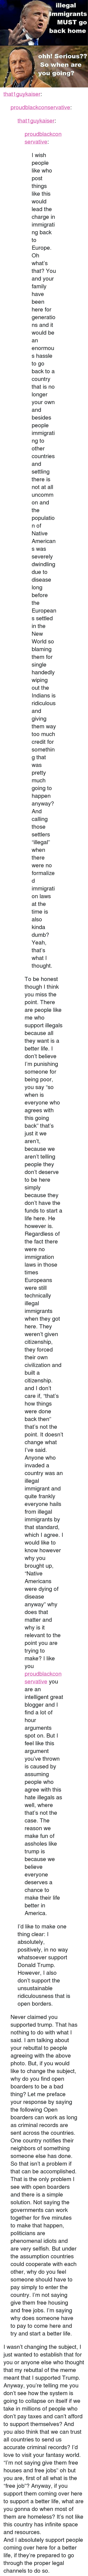 """Fantasy World: illegal  mmigrants  MUST go  back home  ohh! Serious?2  So when are  you going? <p><a href=""""http://that1guykaiser.tumblr.com/post/130065420044/proudblackconservative-that1guykaiser"""" class=""""tumblr_blog"""">that1guykaiser</a>:</p><blockquote> <p><a href=""""http://proudblackconservative.tumblr.com/post/130065086209/that1guykaiser-proudblackconservative-i-wish"""" class=""""tumblr_blog"""">proudblackconservative</a>:</p>  <blockquote> <p><a href=""""http://that1guykaiser.tumblr.com/post/130064666374/proudblackconservative-i-wish-people-like-who"""" class=""""tumblr_blog"""">that1guykaiser</a>:</p>  <blockquote> <p><a href=""""http://proudblackconservative.tumblr.com/post/130014450389/i-wish-people-like-who-post-things-like-this-would"""" class=""""tumblr_blog"""">proudblackconservative</a>:</p>  <blockquote> <p>I wish people like who post things like this would lead the charge in immigrating back to Europe. Oh what's that? You and your family have been here for generations and it would be an enormous hassle to go back to a country that is no longer your own and besides people immigrating to other countries and settling there is not at all uncommon and the population of Native Americans was severely dwindling due to disease long before the Europeans settled in the New World so blaming them for single handedly wiping out the Indians is ridiculous and giving them way too much credit for something that was pretty much going to happen anyway? And calling those settlers """"illegal"""" when there were no formalized immigration laws at the time is also kinda dumb?</p>  <p>Yeah, that's what I thought.</p> </blockquote>  <p>To be honest though I think you miss the point. There are people like me who support illegals because all they want is a better life. I don't believe I'm punishing someone for being poor, you say """"so when is everyone who agrees with this going back"""" that's just it we aren't, because we aren't telling people they don't deserve to be here simply because they don't have the funds to start a"""